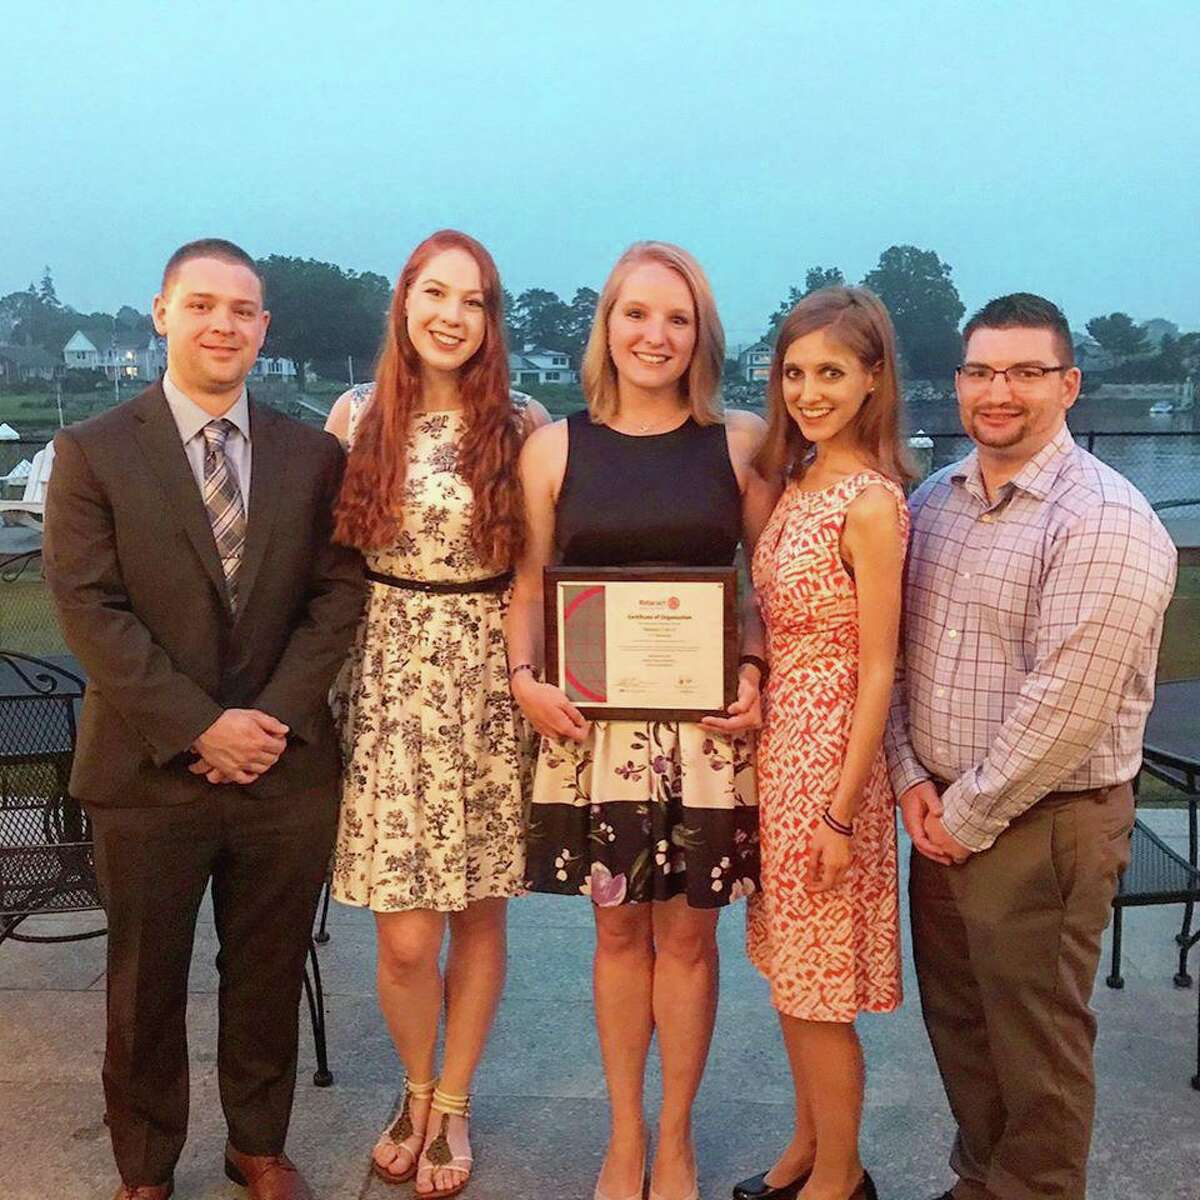 CT Shoreline Rotaract Officers, Chris Kelly, Laura Campbell,Morgan Kuehnle, Ashley Volkens and Clark Law.